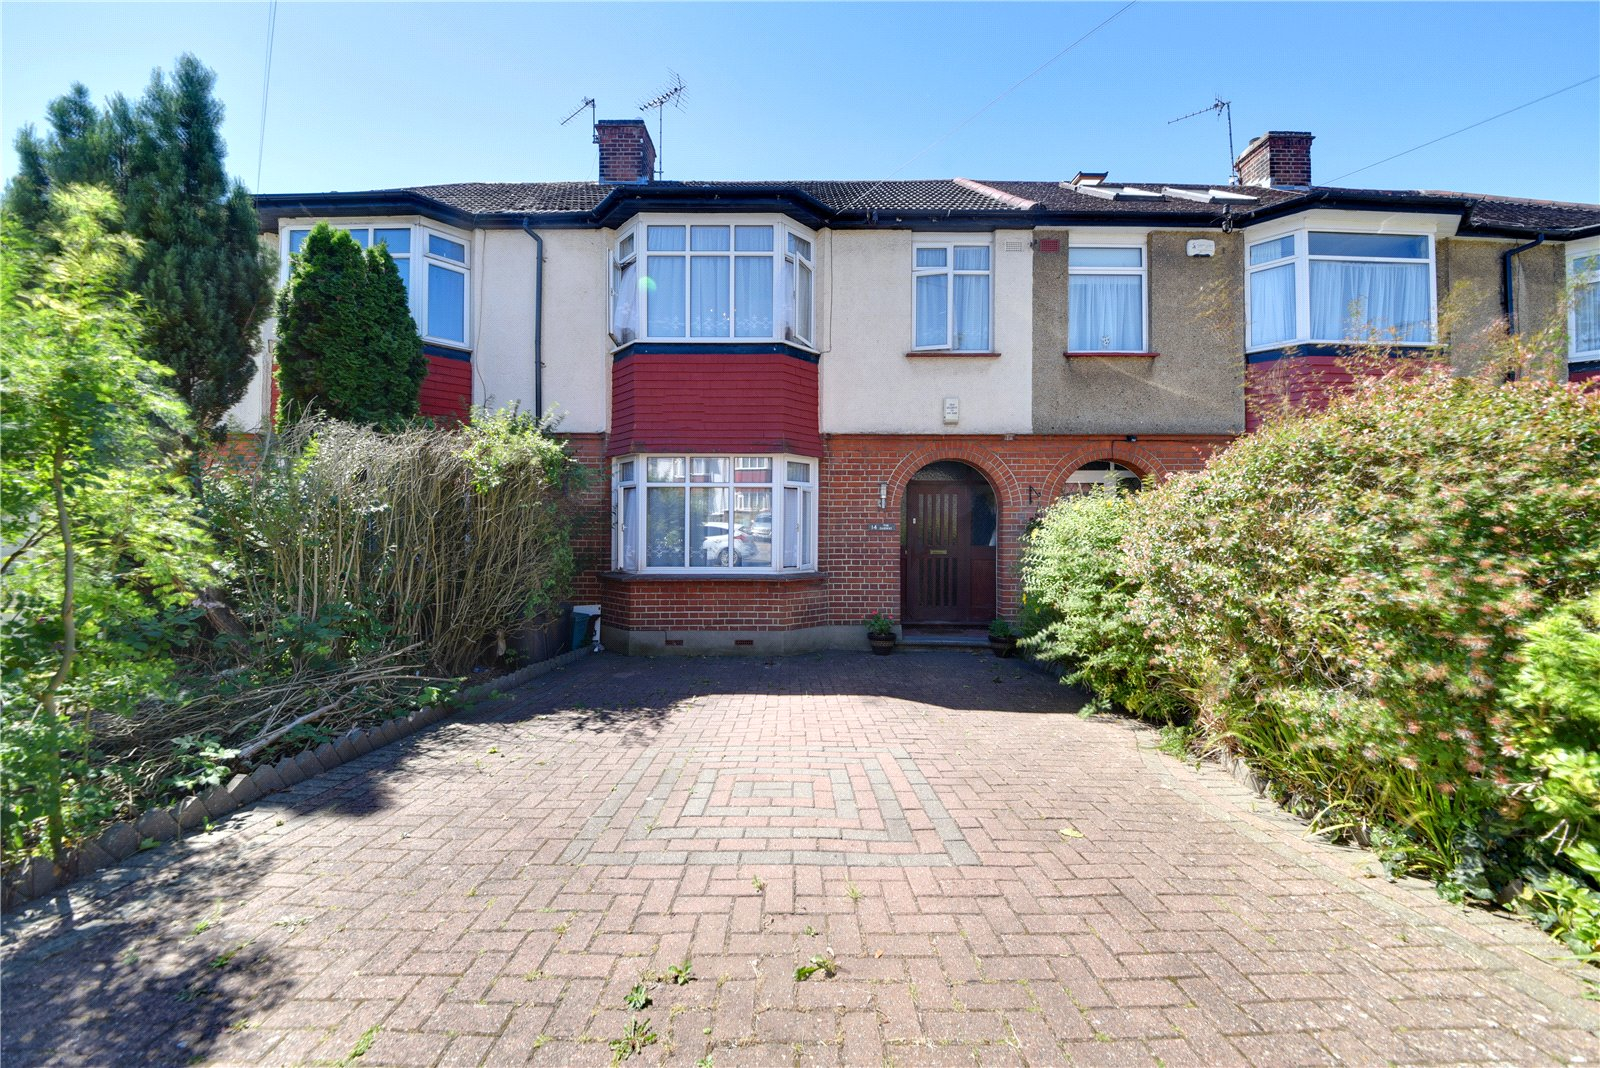 3 bed house for sale in The Fairway, Southgate  - Property Image 1